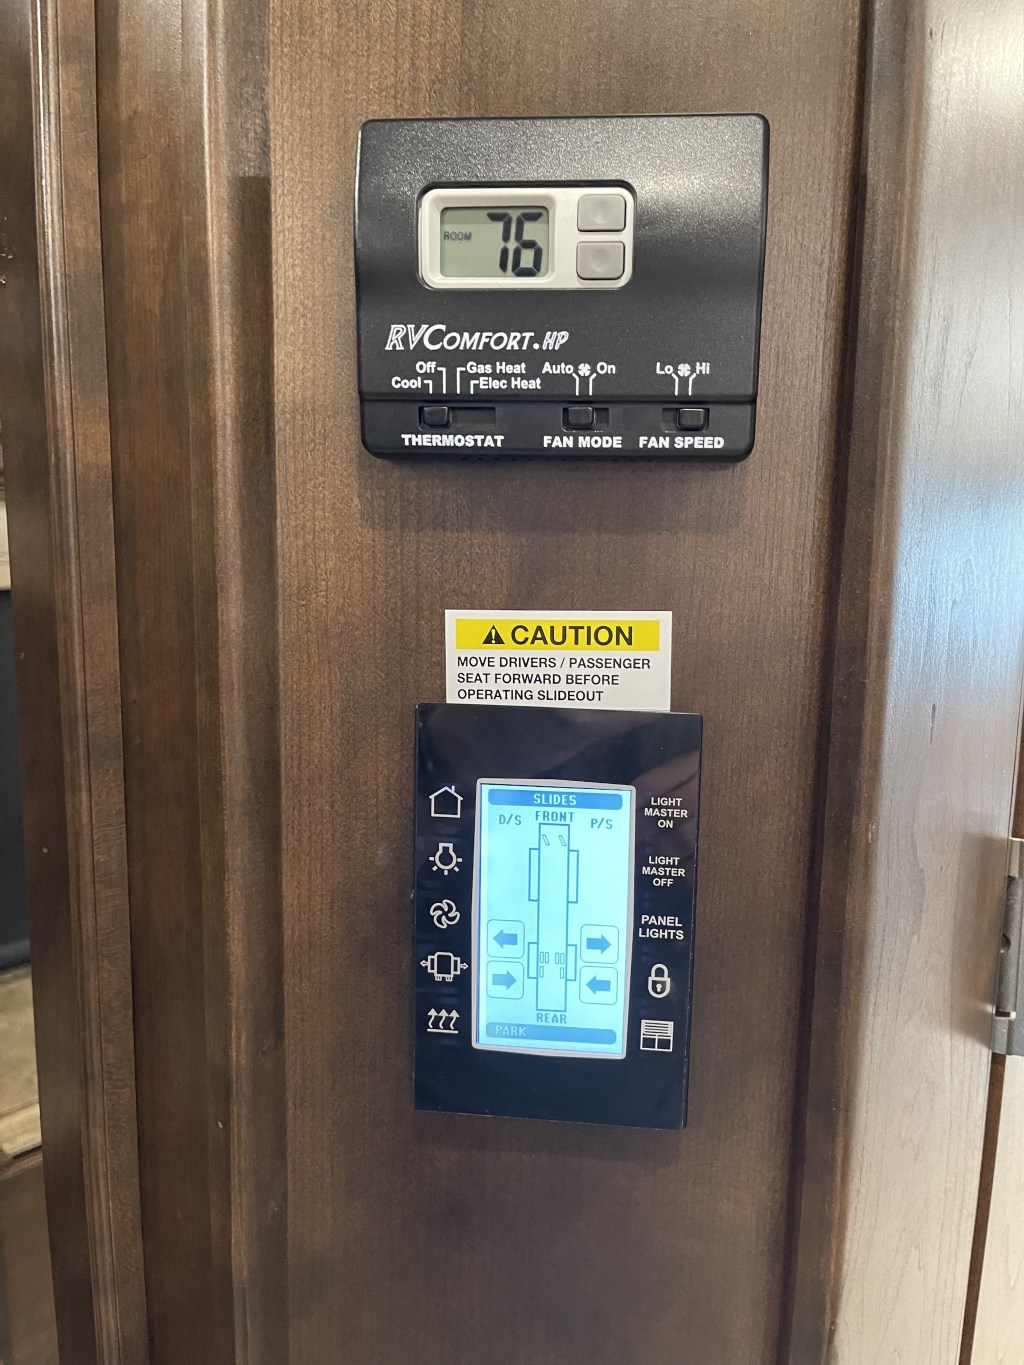 Bedroom thermostat and control panel